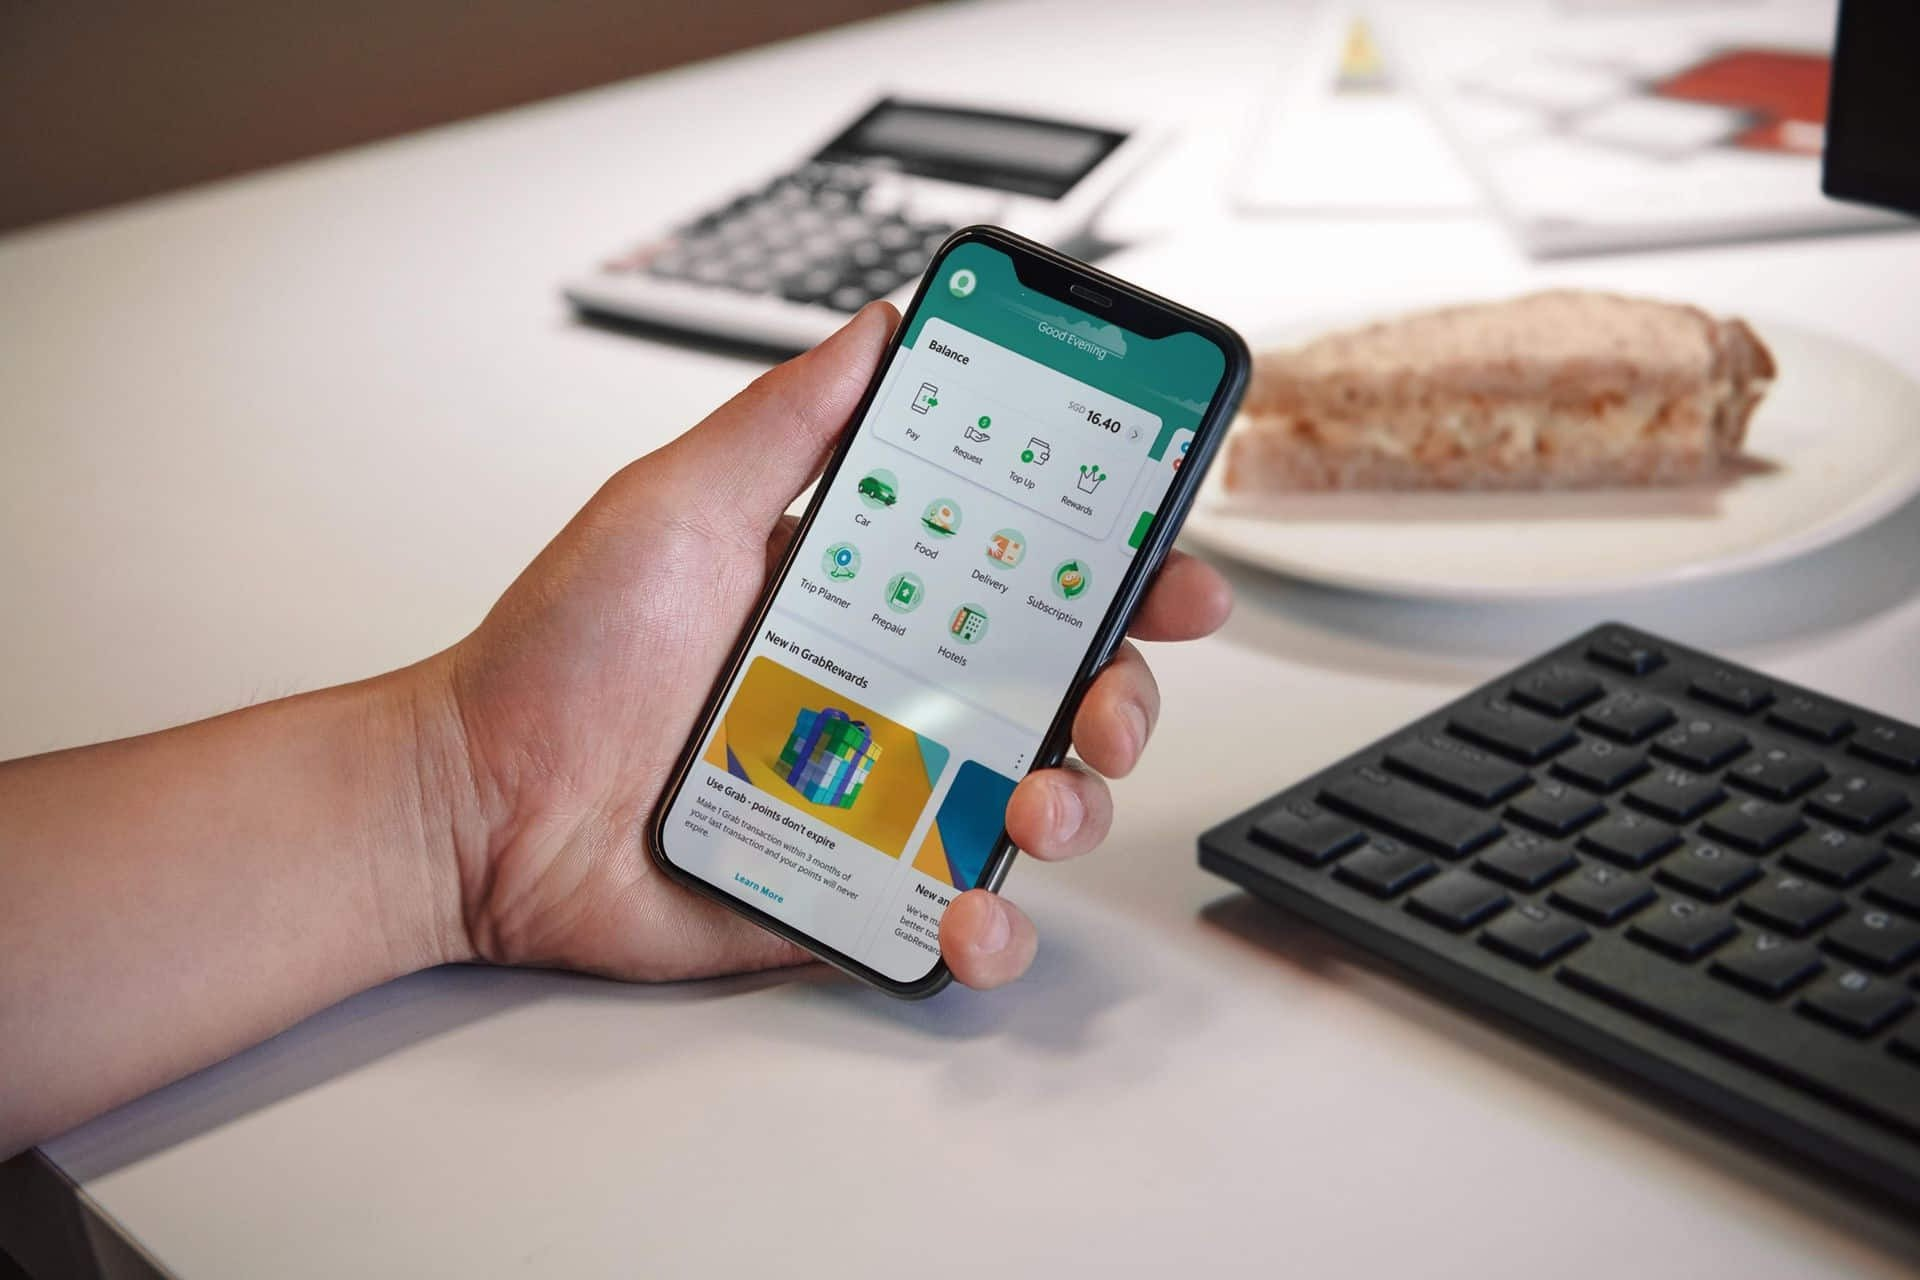 With AutoInvest, Grab customers can invest at least S$1 each time they spend on the Grab platform